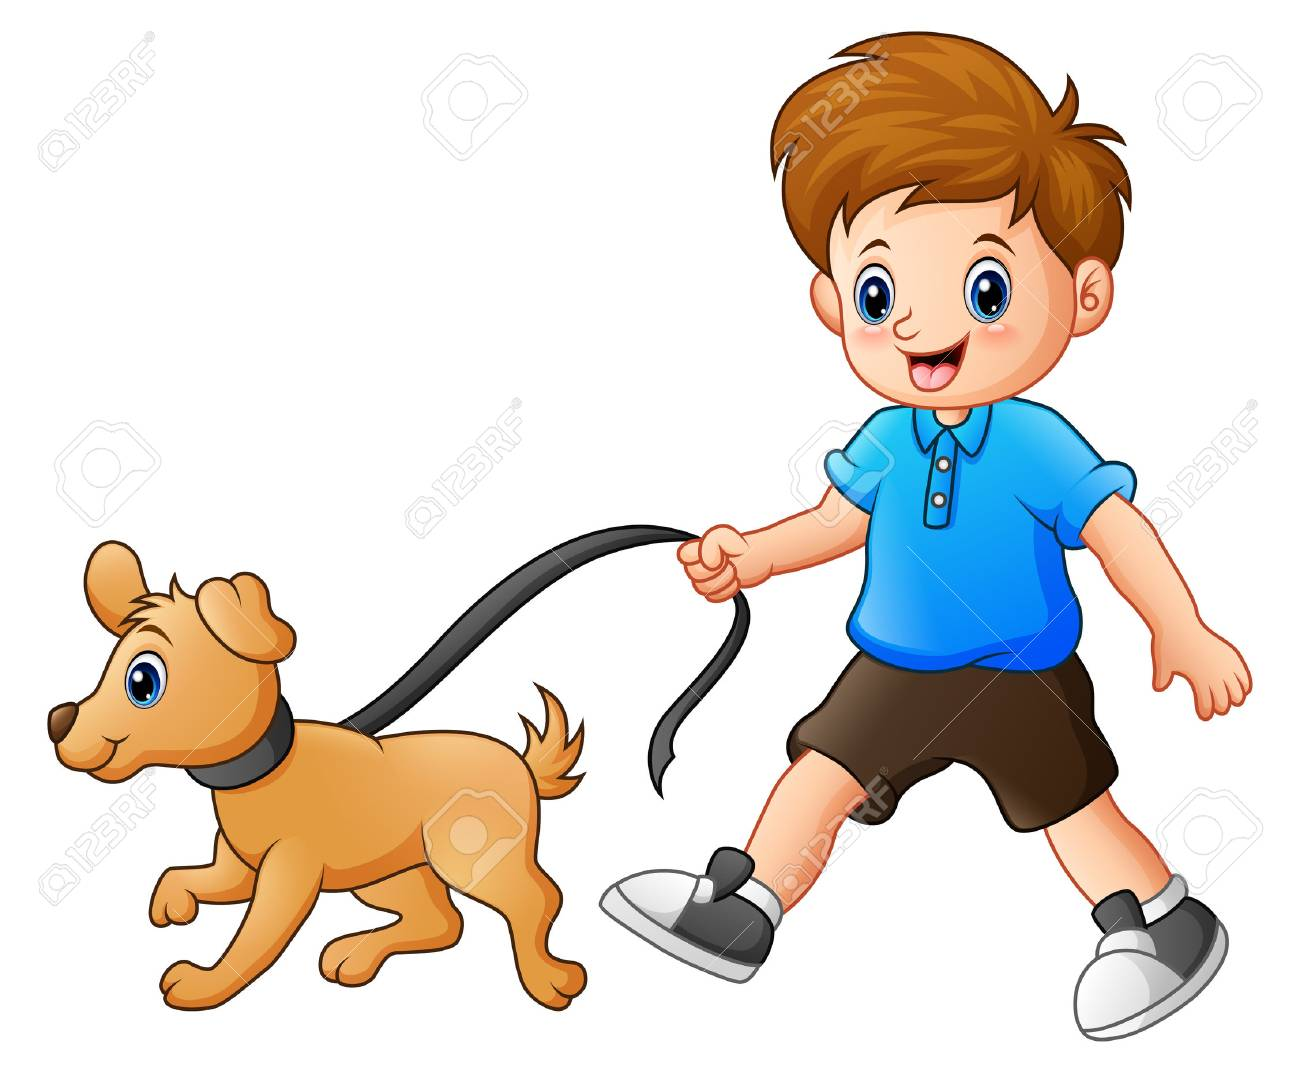 Vector illustration of Little boy walking with his dog.